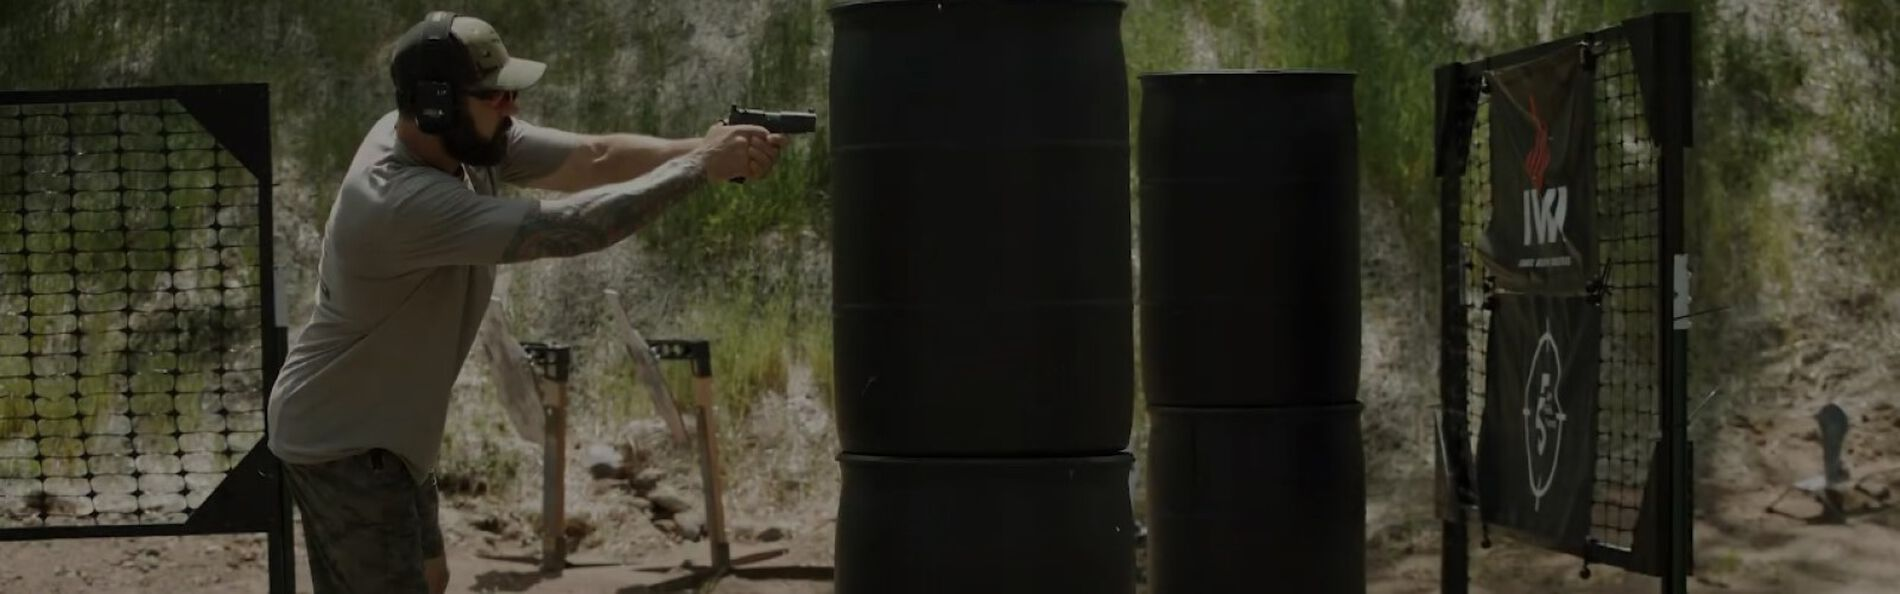 Josh Froelich shooting a pistal at an outdoor range